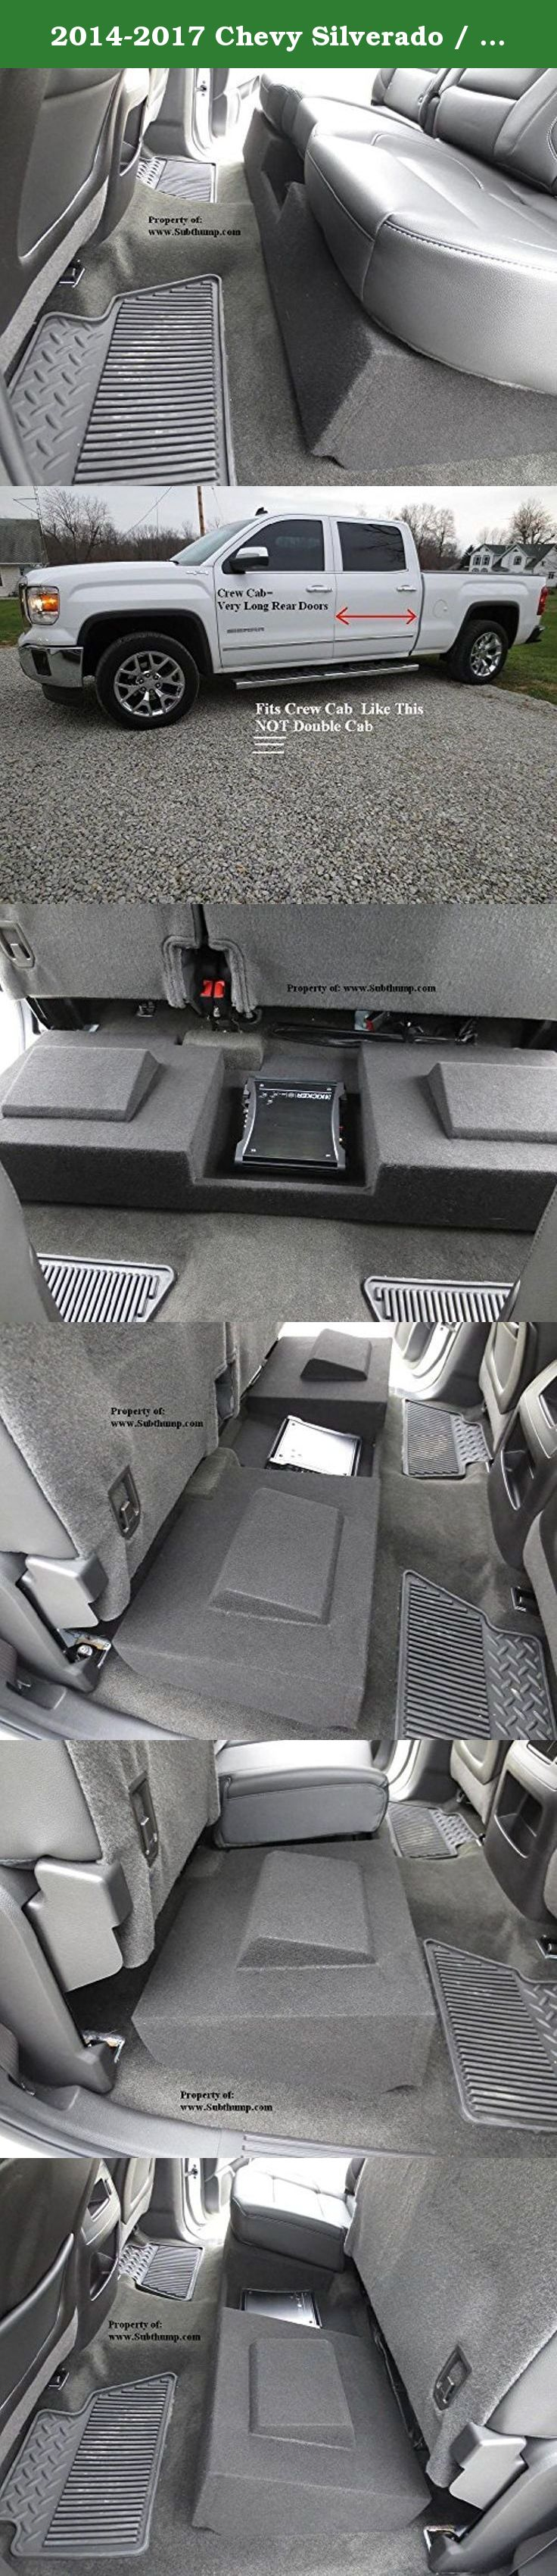 2014 2017 Chevy Silverado Gmc Sierra Crew Cab Du Subwoofer 2015 Rear Junction Block Dual 10 Downfire With Amp Space